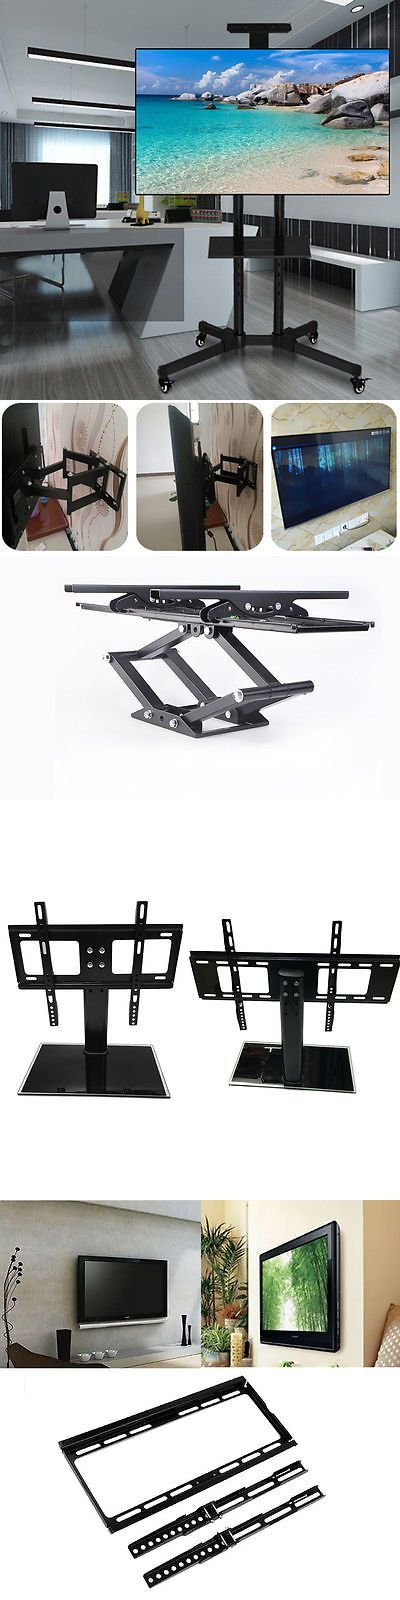 TV Mounts and Brackets: Universal Tabletop Tv Stand Pedestal Base Swivel Wall Mount For 10-65 Tvs Lot Zn BUY IT NOW ONLY: $67.0